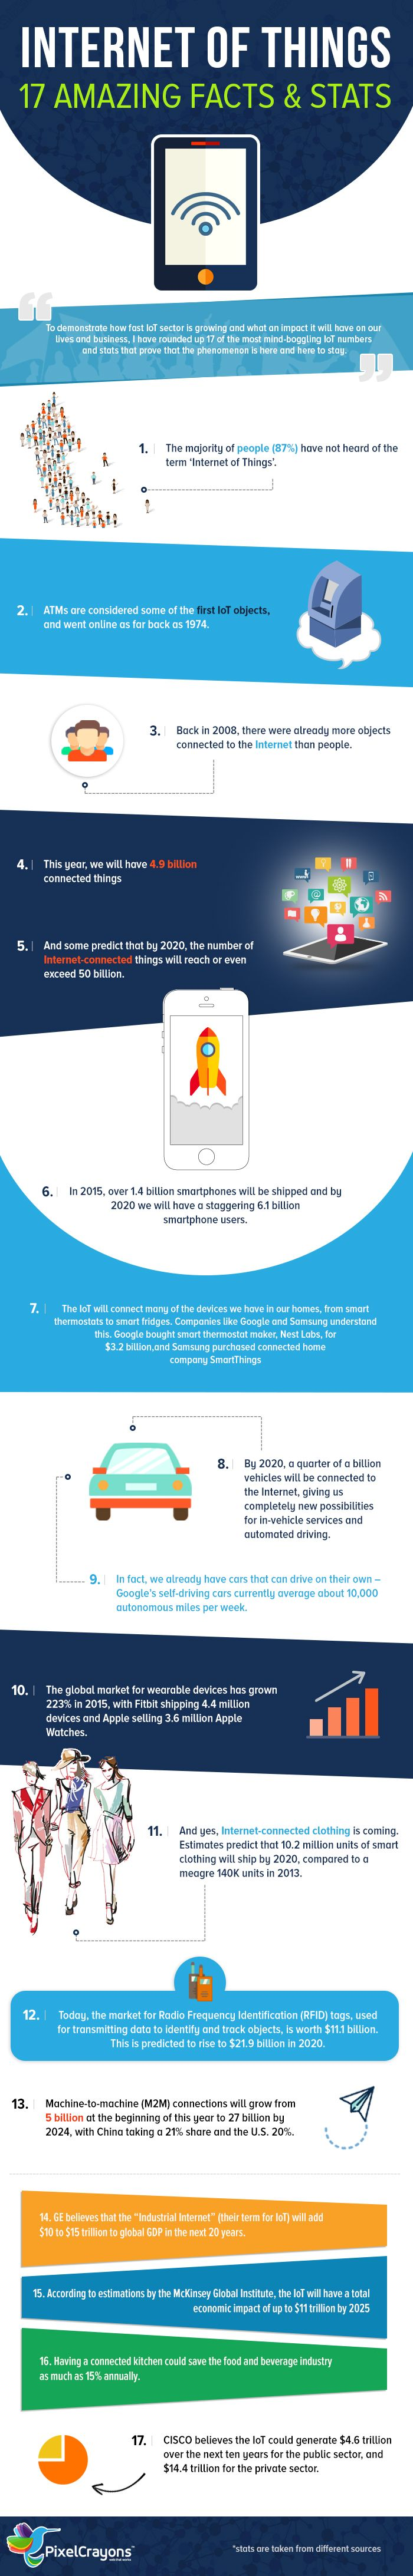 Best Internet Of Things IoT Images On Pinterest Internet Of - 15 amazing facts about the internet